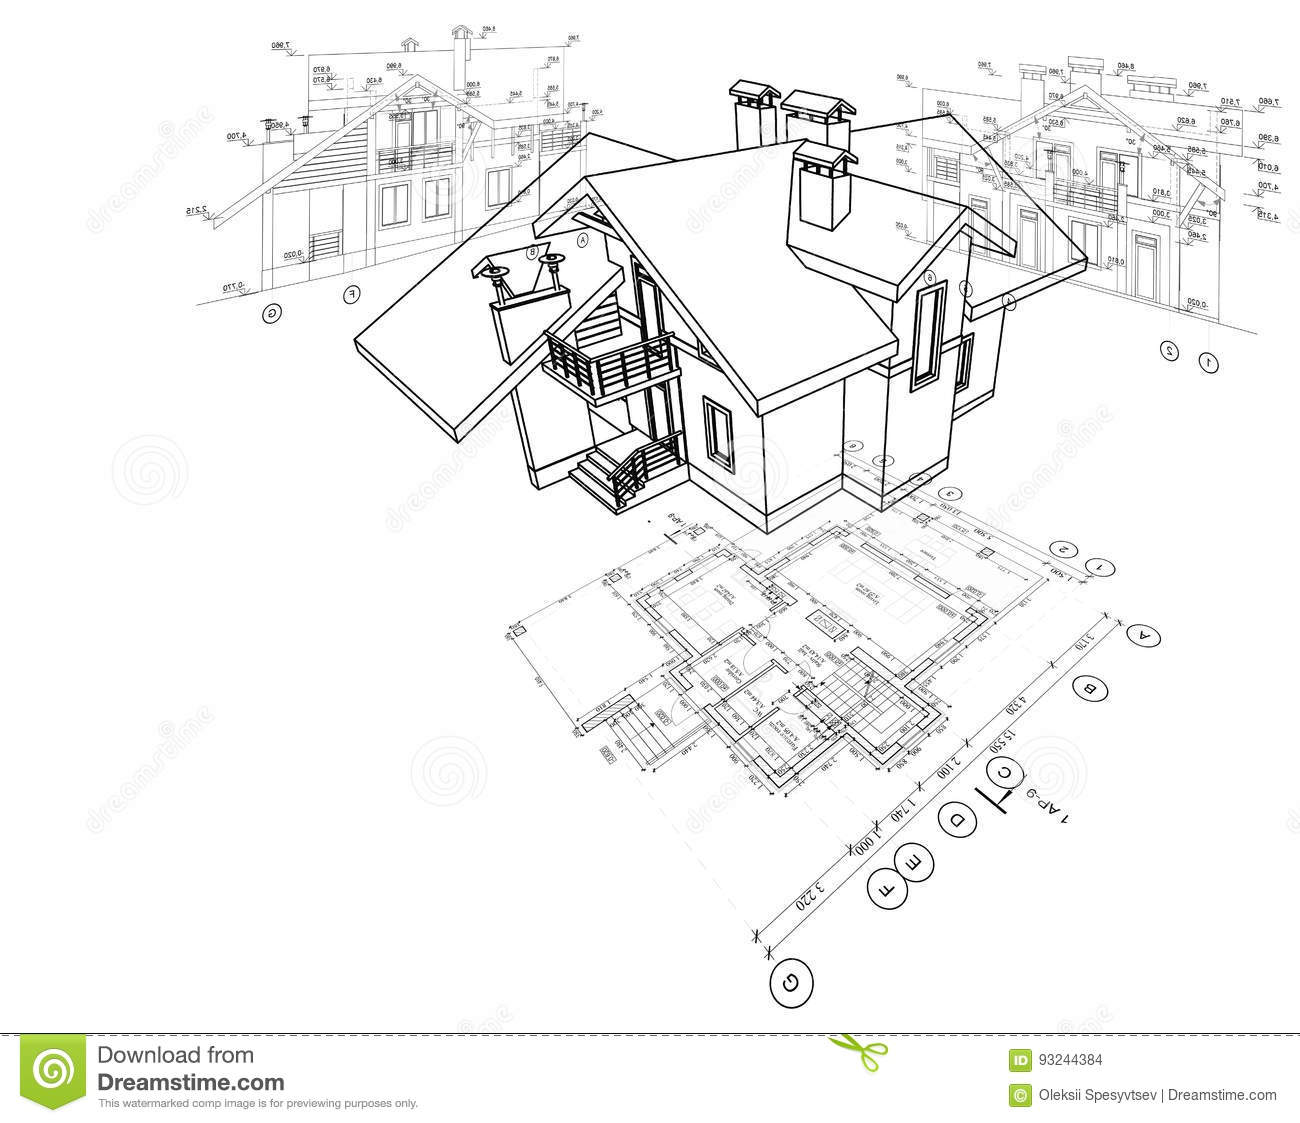 Detailed Architectural Plan Floor Plan Layout Perspective View 3d Model Stock Illustration Illustration Of Floor Architecture 93244384